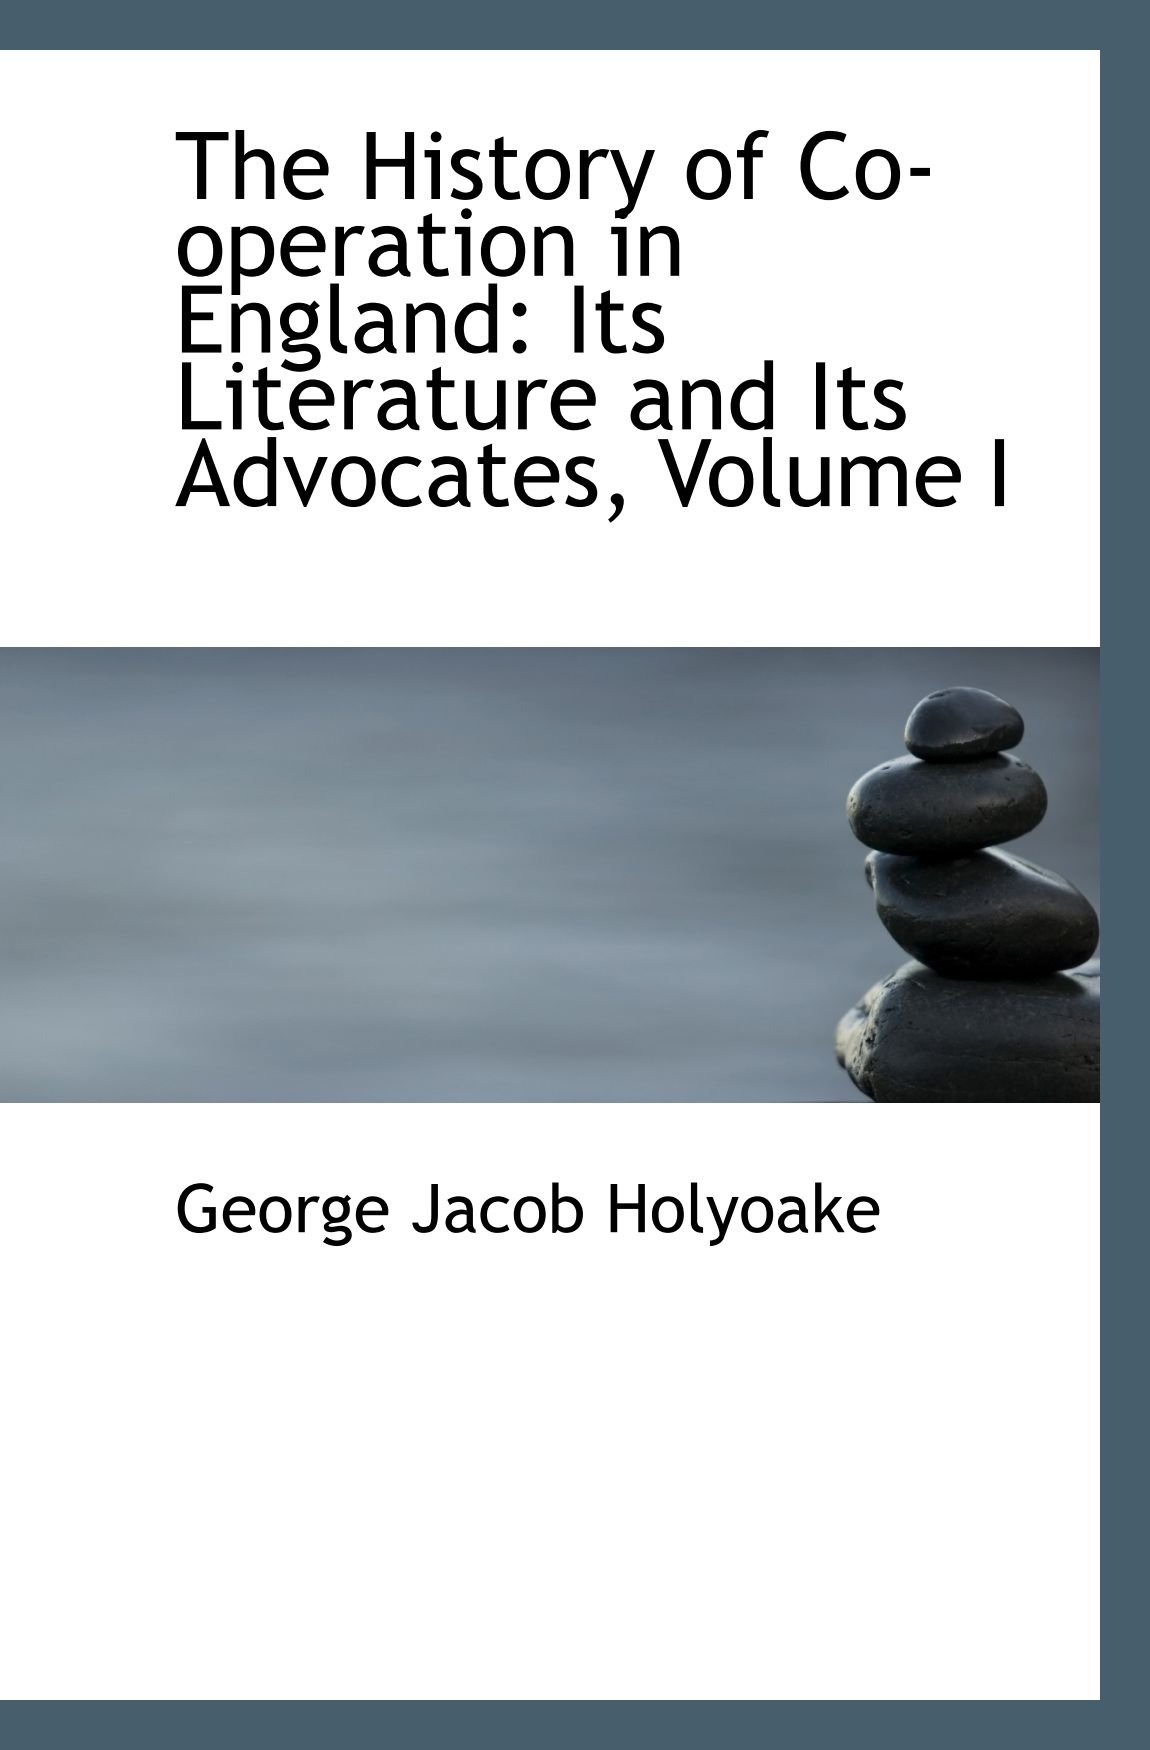 Download The History of Co-operation in England: Its Literature and Its Advocates, Volume I pdf